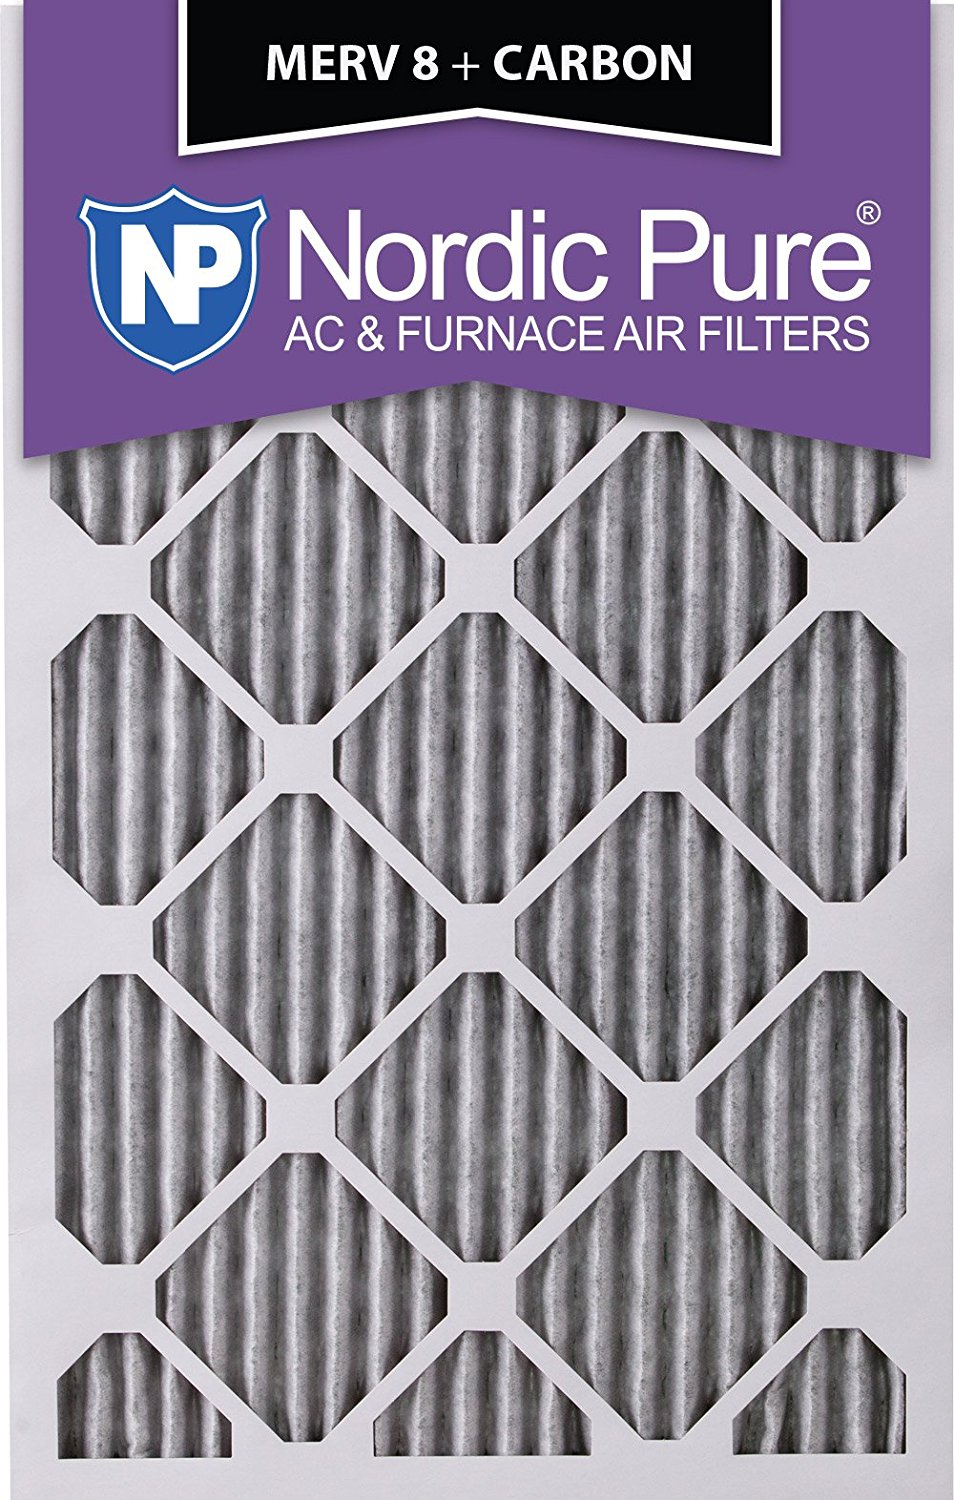 Nordic Pure 16x25x4 (3-5/8 Actual Depth) Pleated MERV 8 Plus Carbon AC Furnace Filters, Box of 6